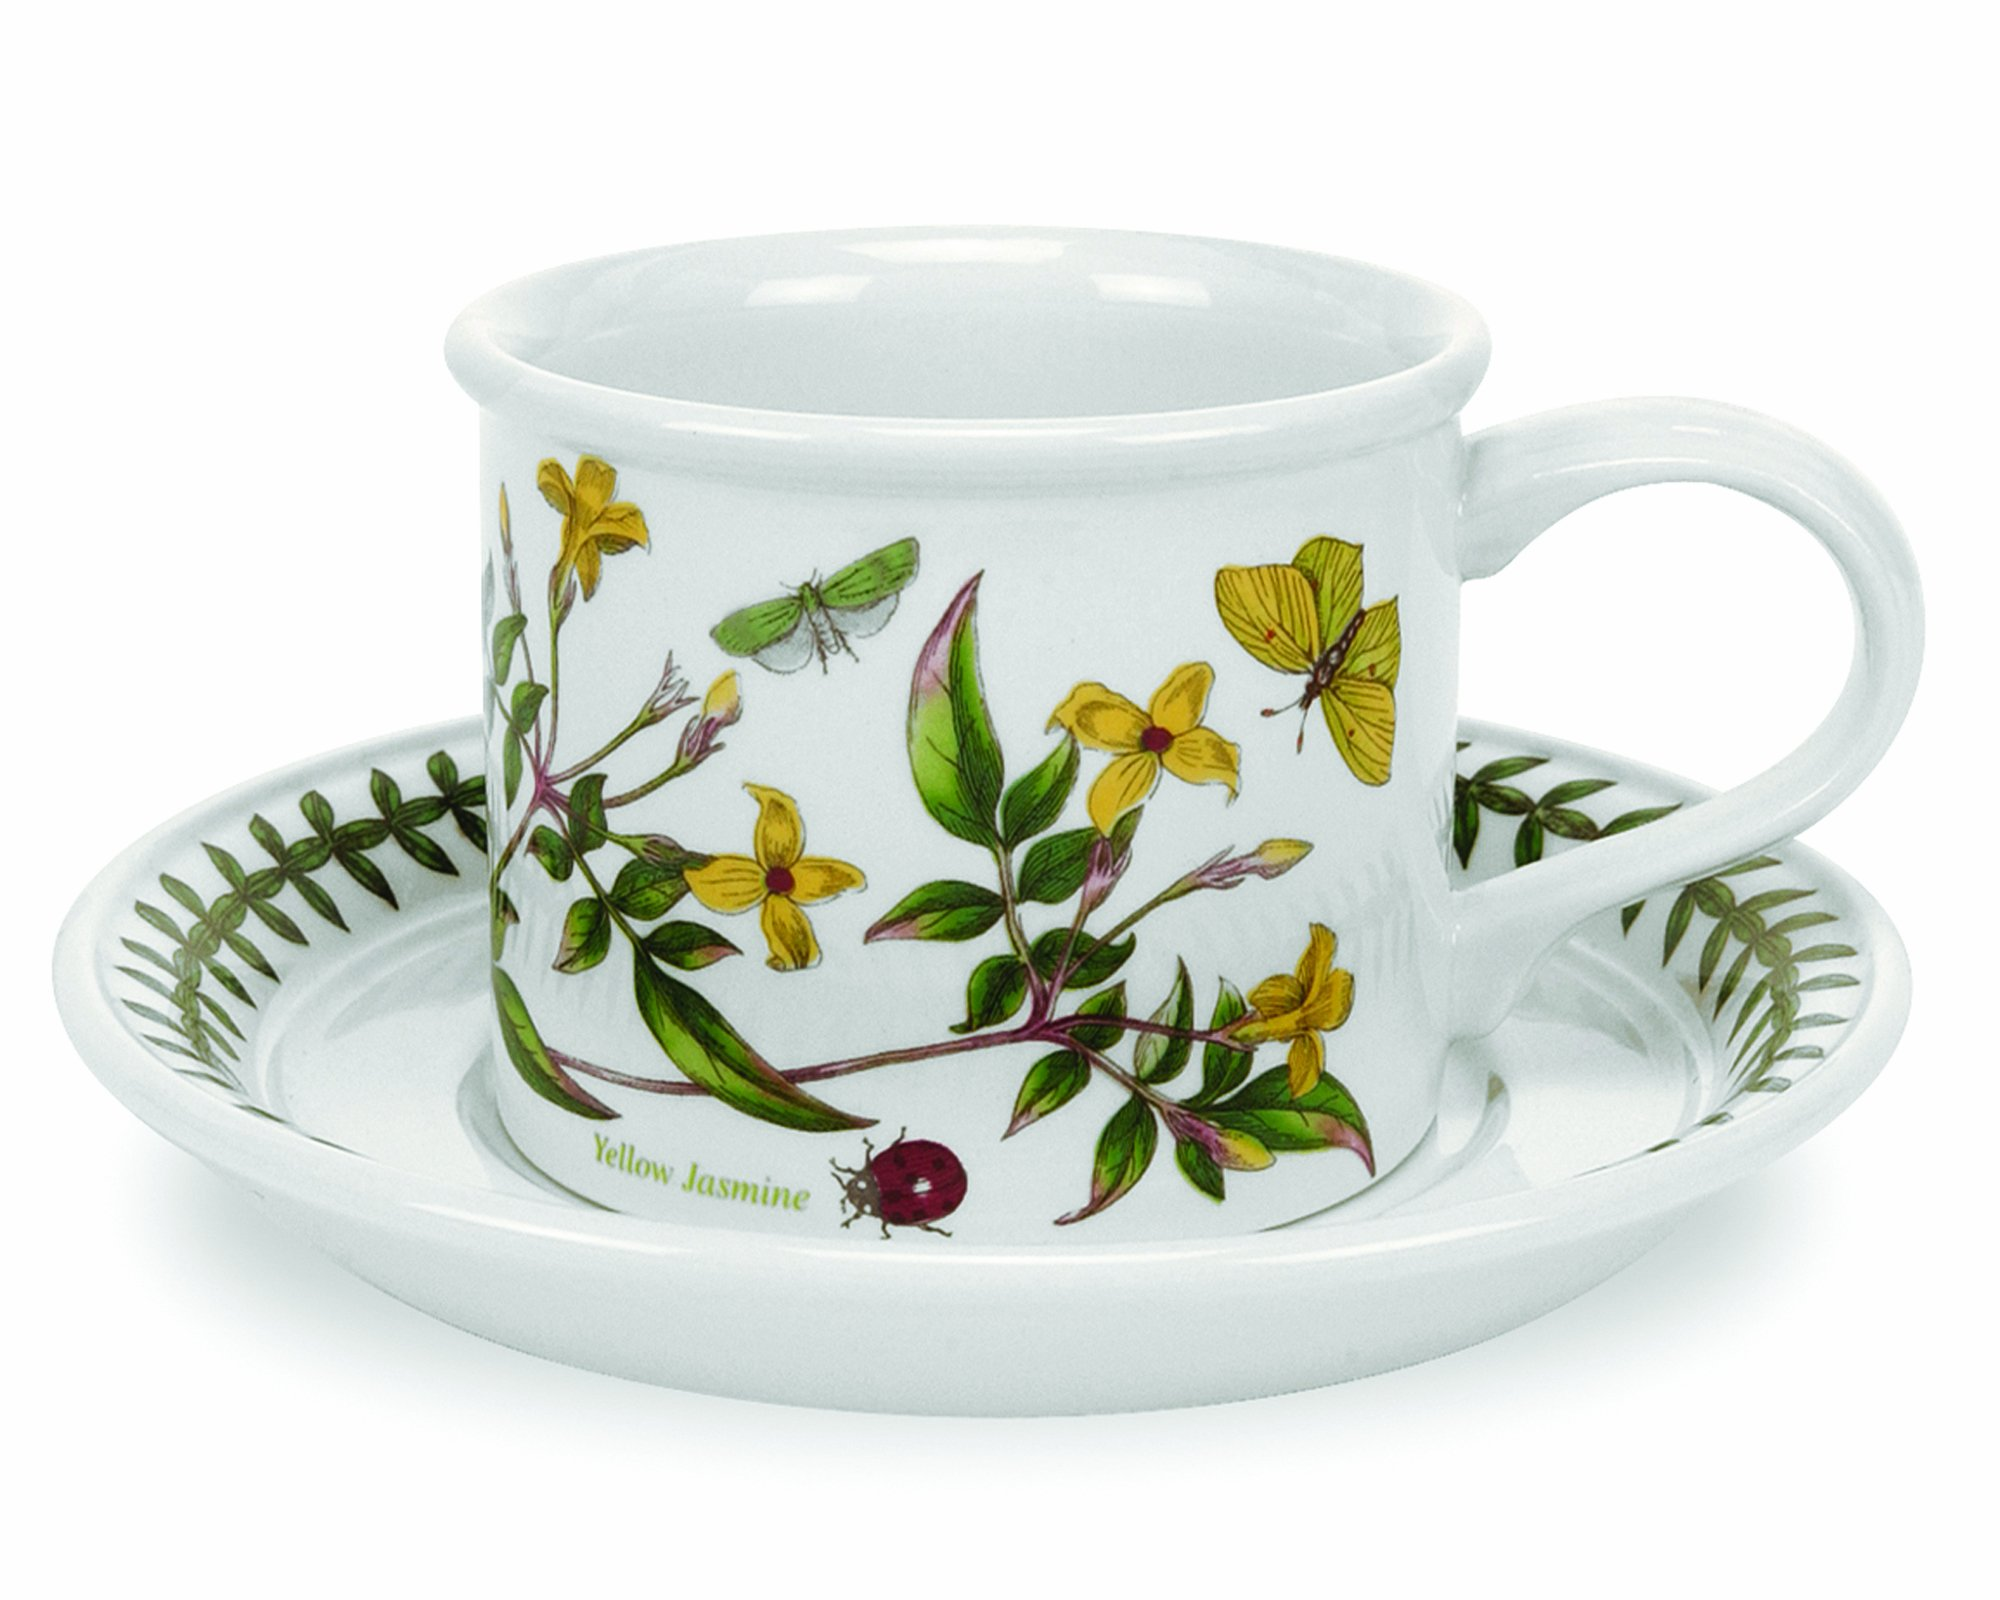 Portmeirion Botanic Garden Drum Shaped Tea Cup and Saucer, Set of 6 Assorted Motifs by Portmeirion (Image #2)